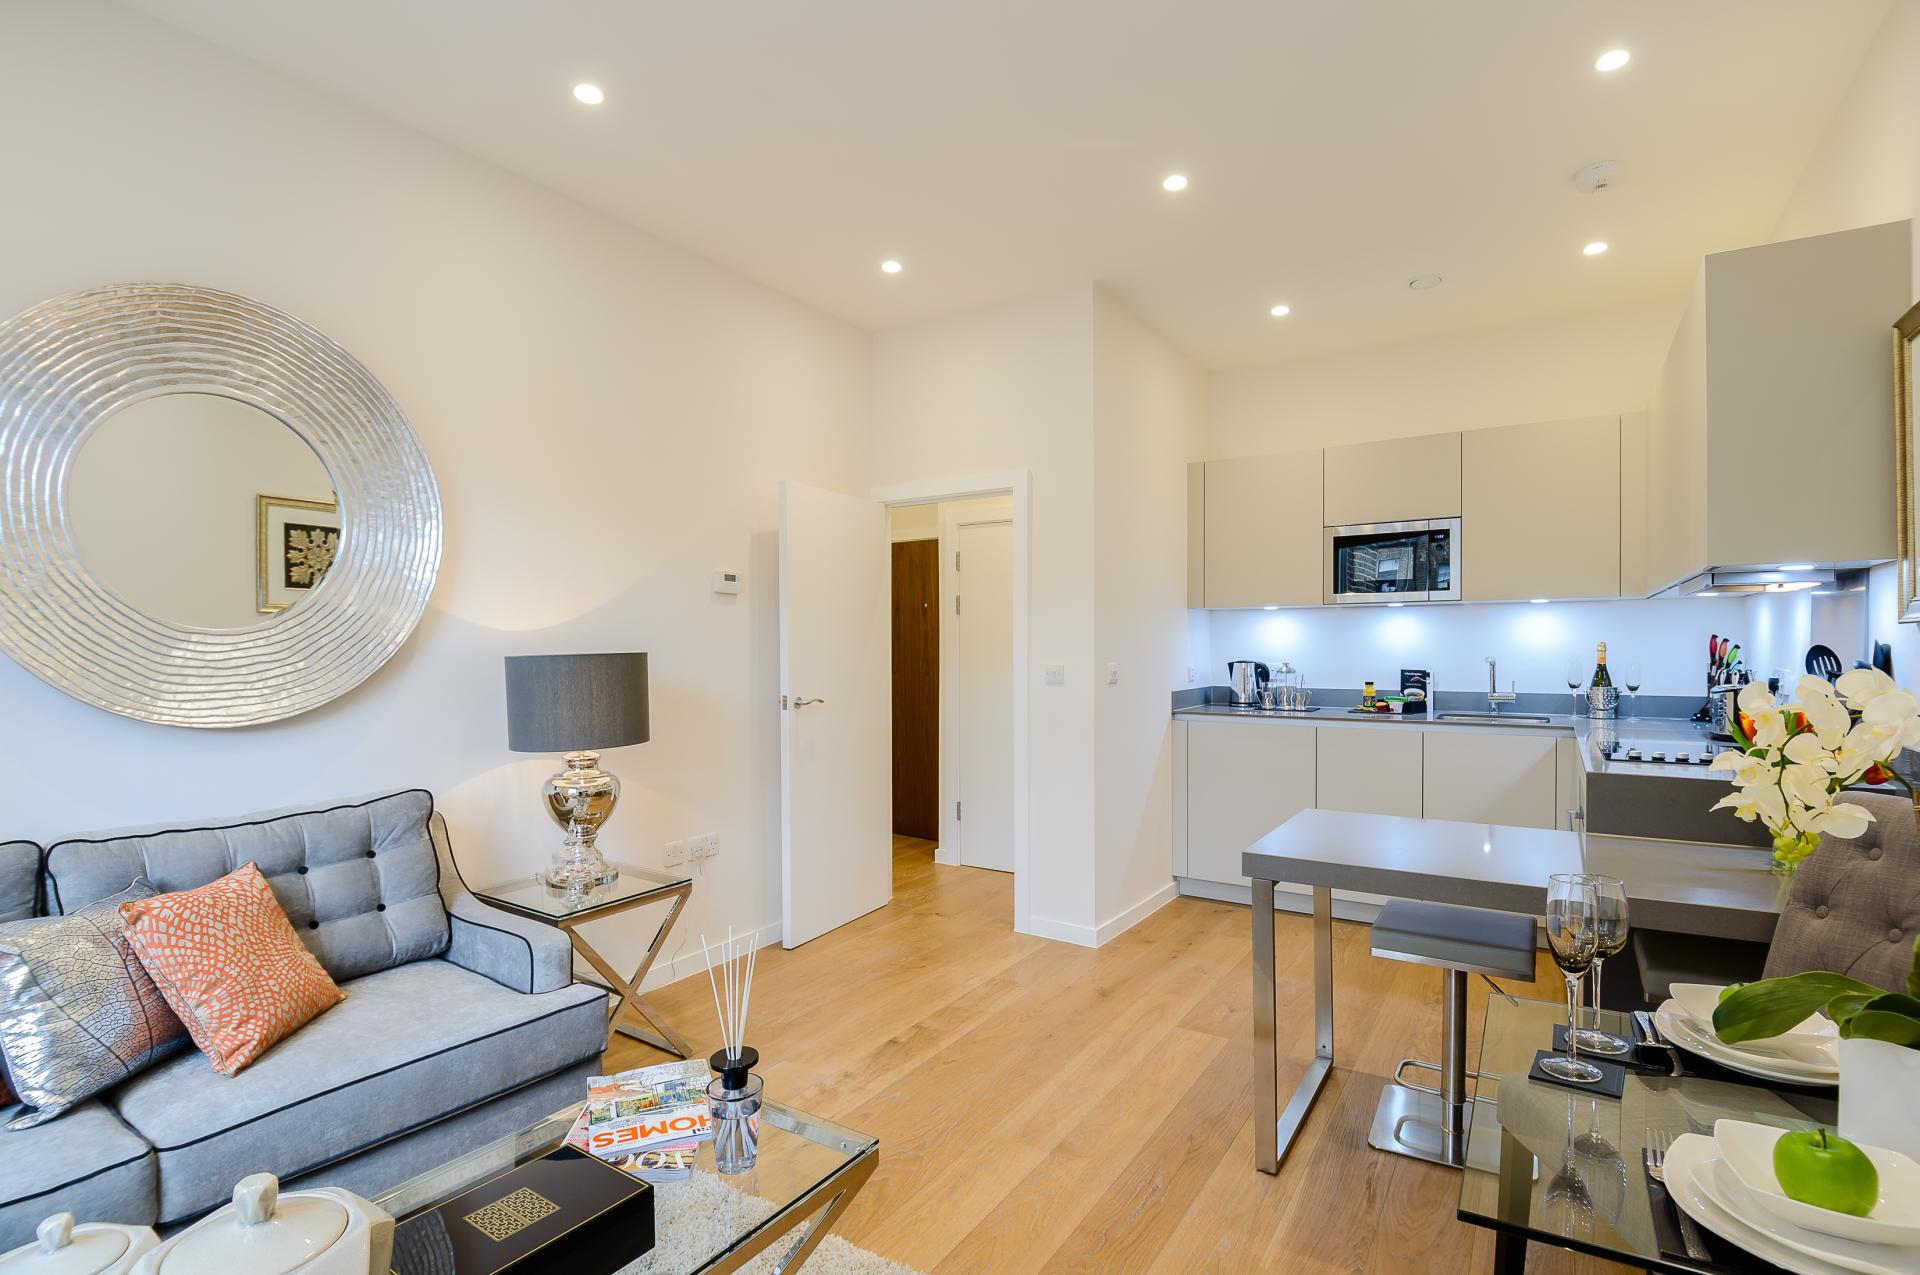 Living room at LAK Serviced Apartments, Gloucester Road, London - Citybase Apartments